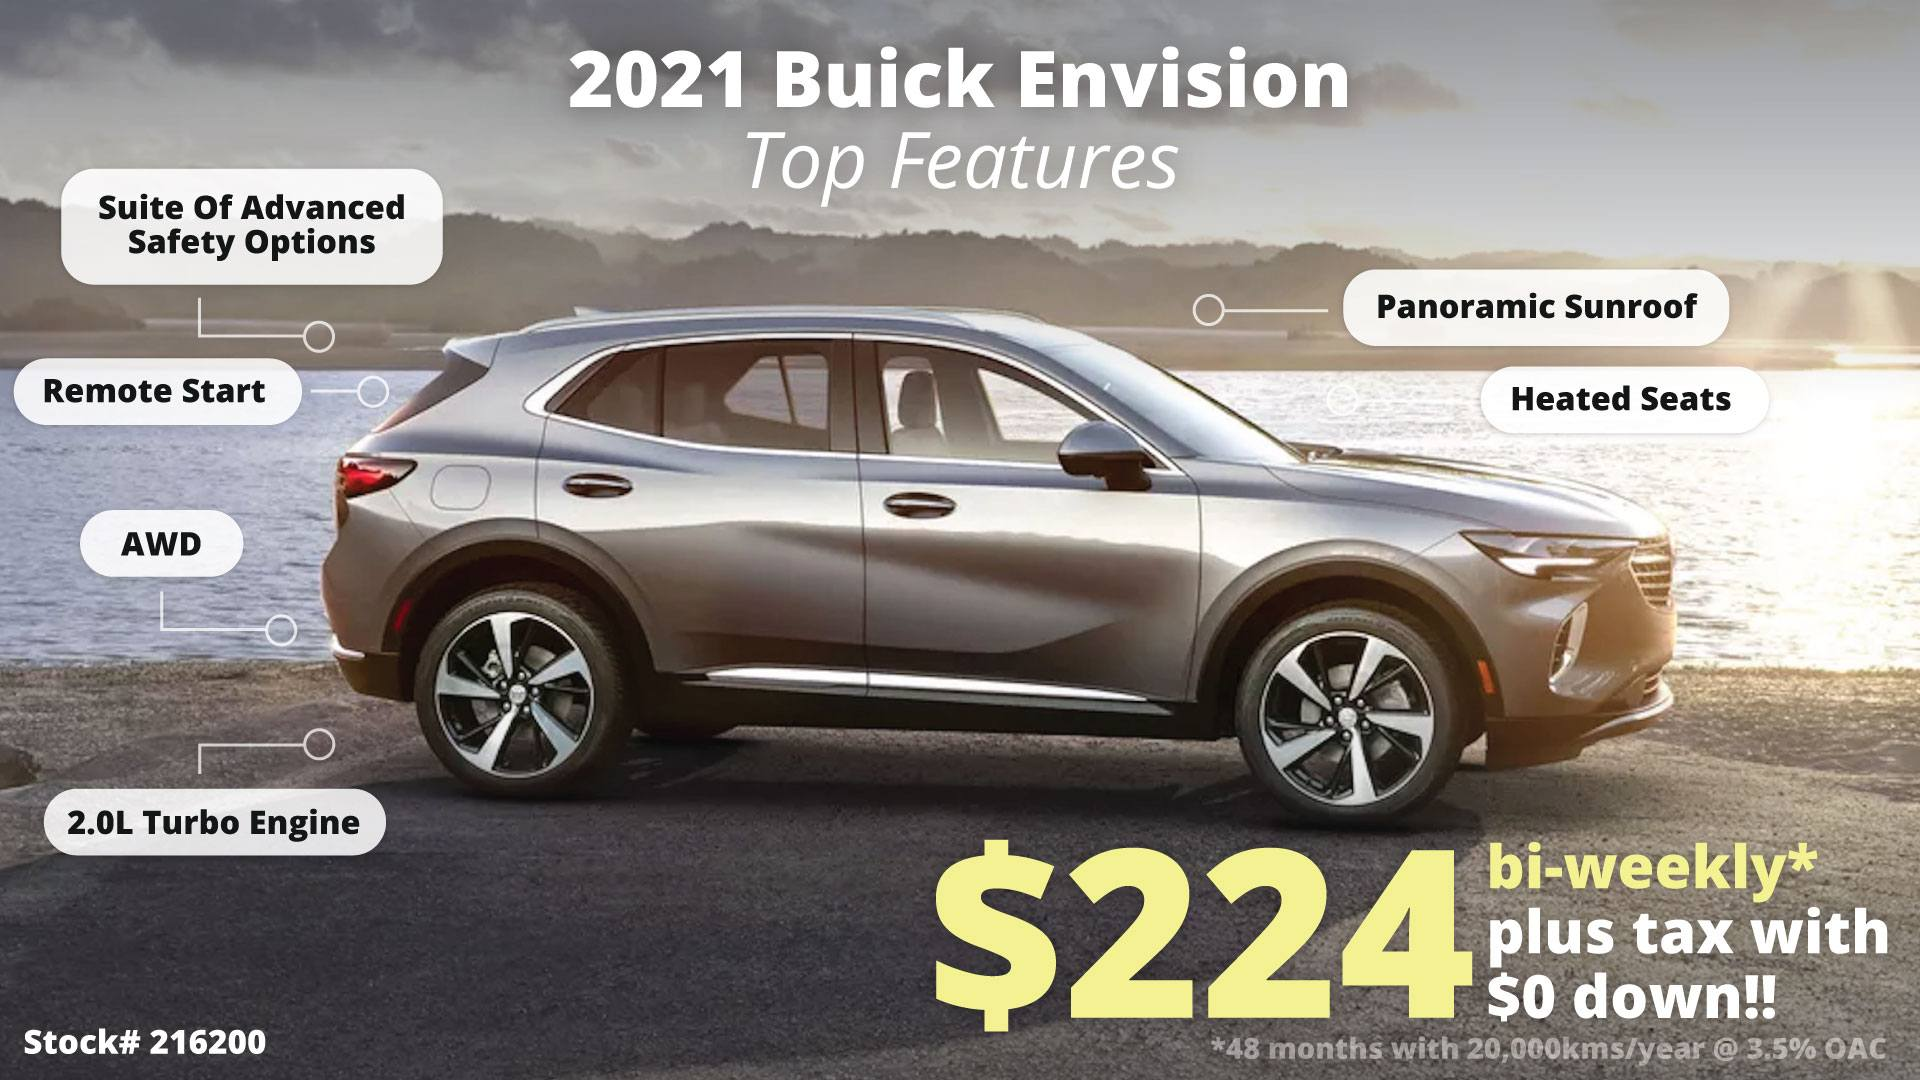 Buick Envision Feature